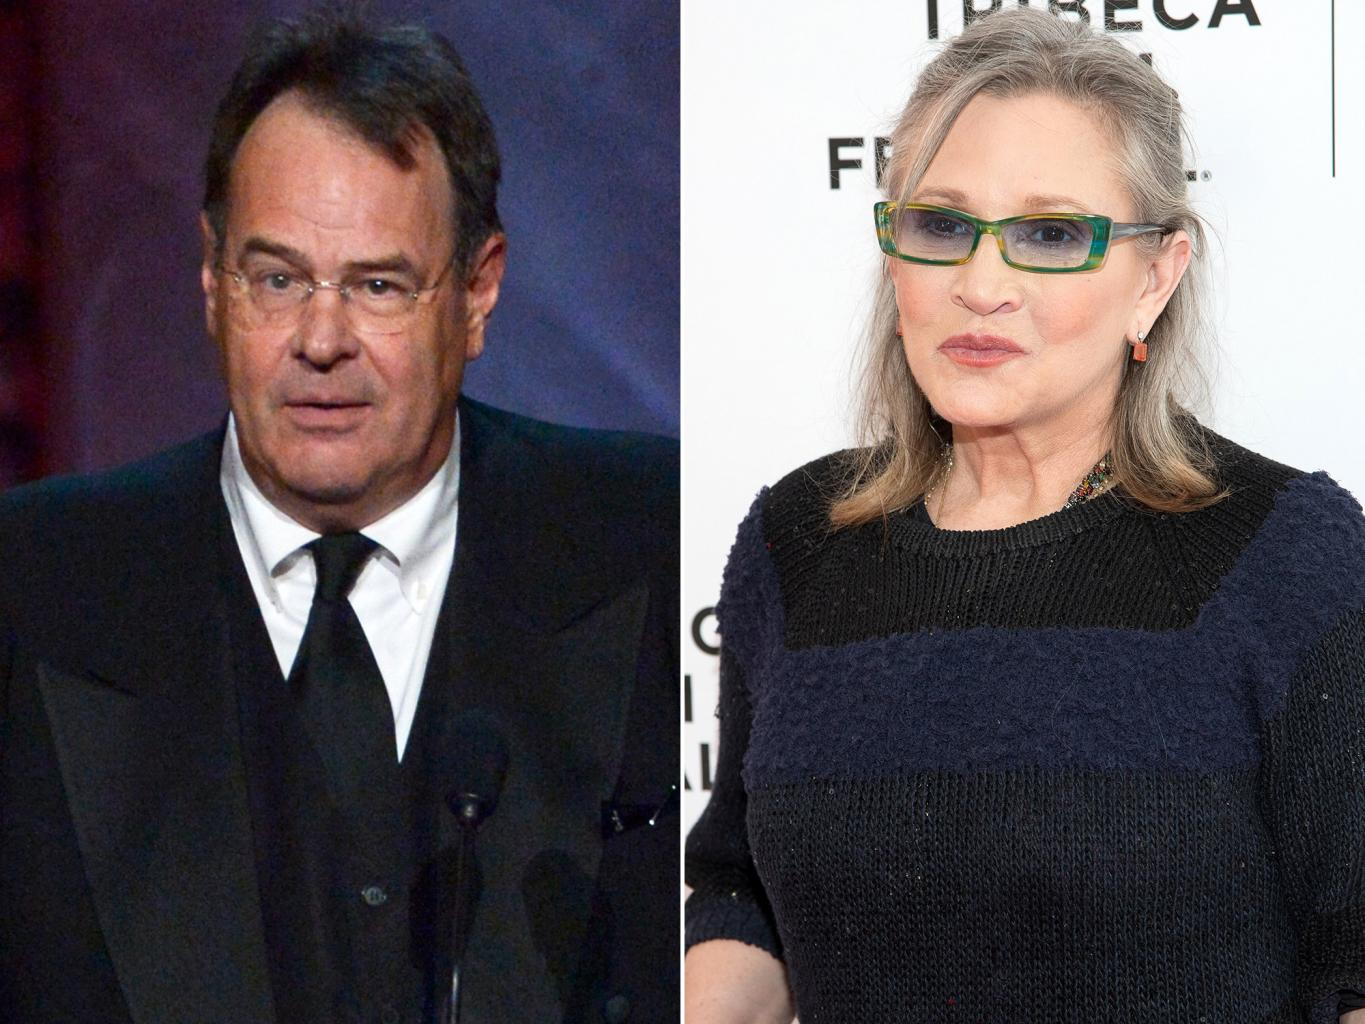 Dan Aykroyd Opens Up About Drugs and Love in Candid Tribute to Carrie Fisher